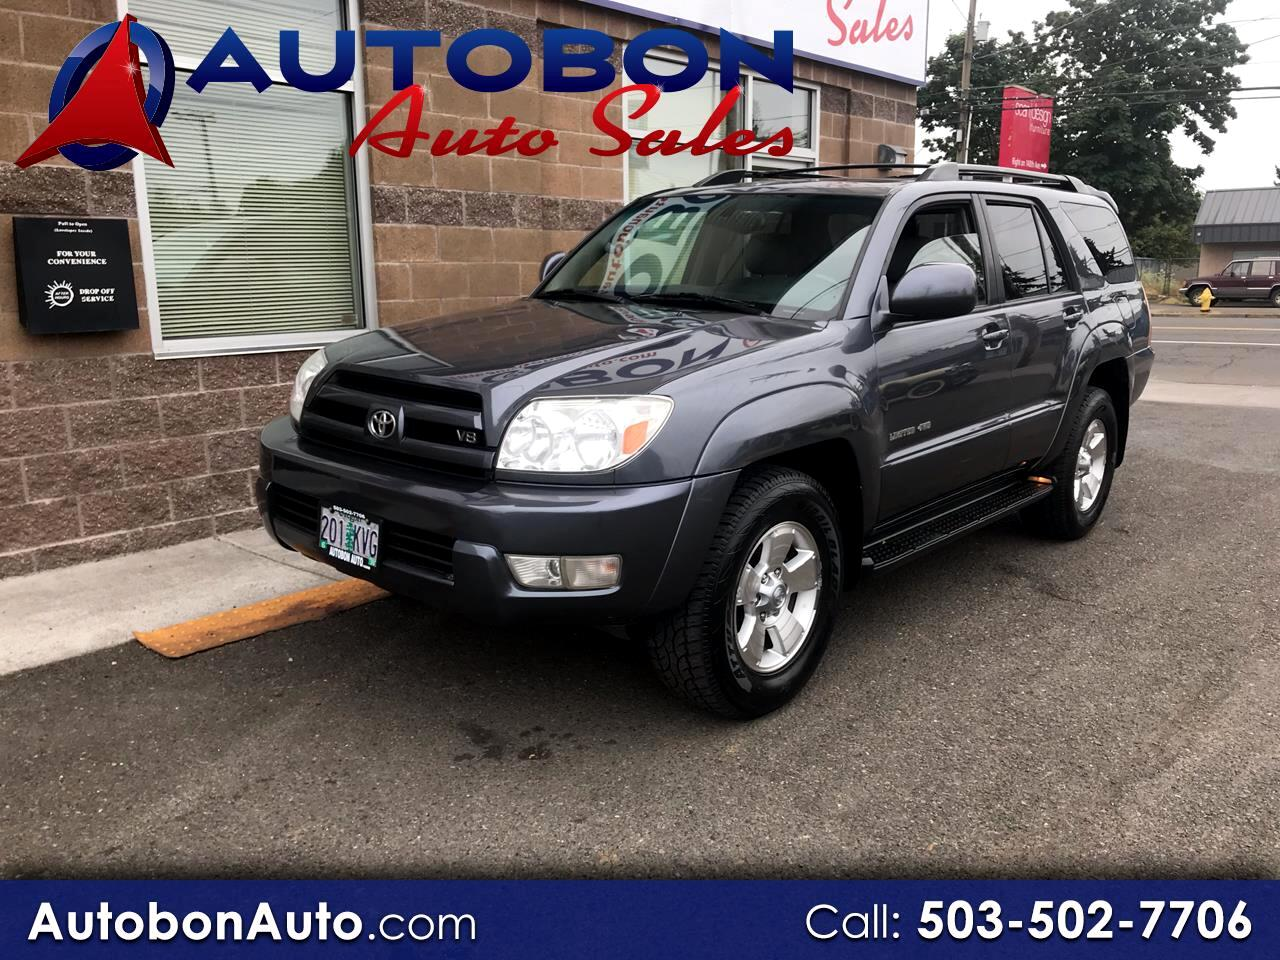 2005 Toyota 4Runner 4dr Limited V8 Auto 4WD (Natl)